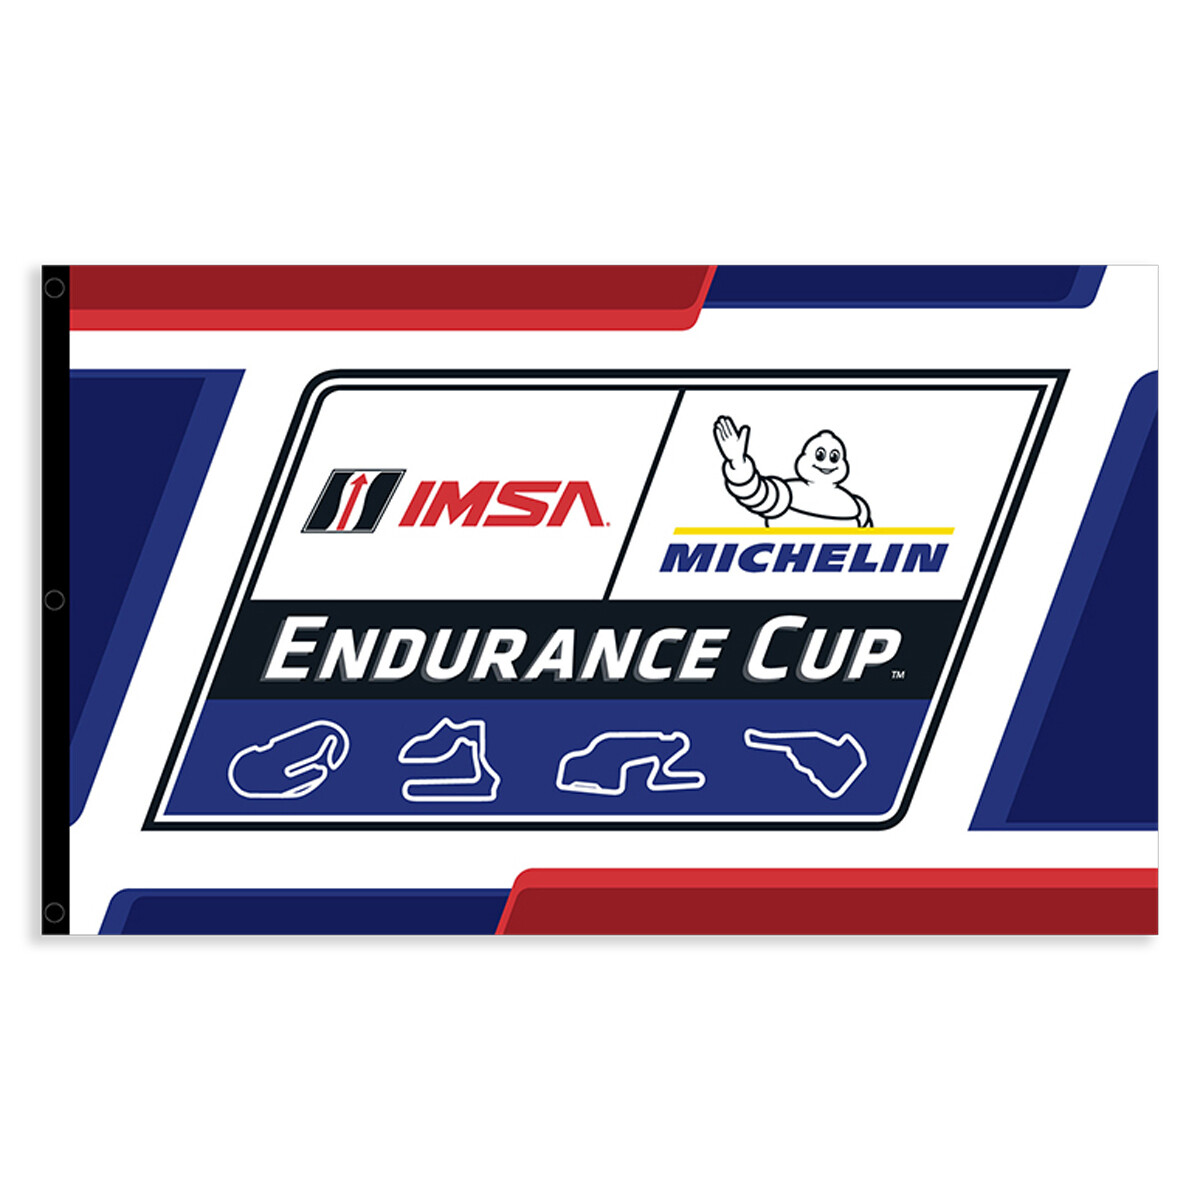 IMSA Endurance Cup Flag 3 ft x 5 ft